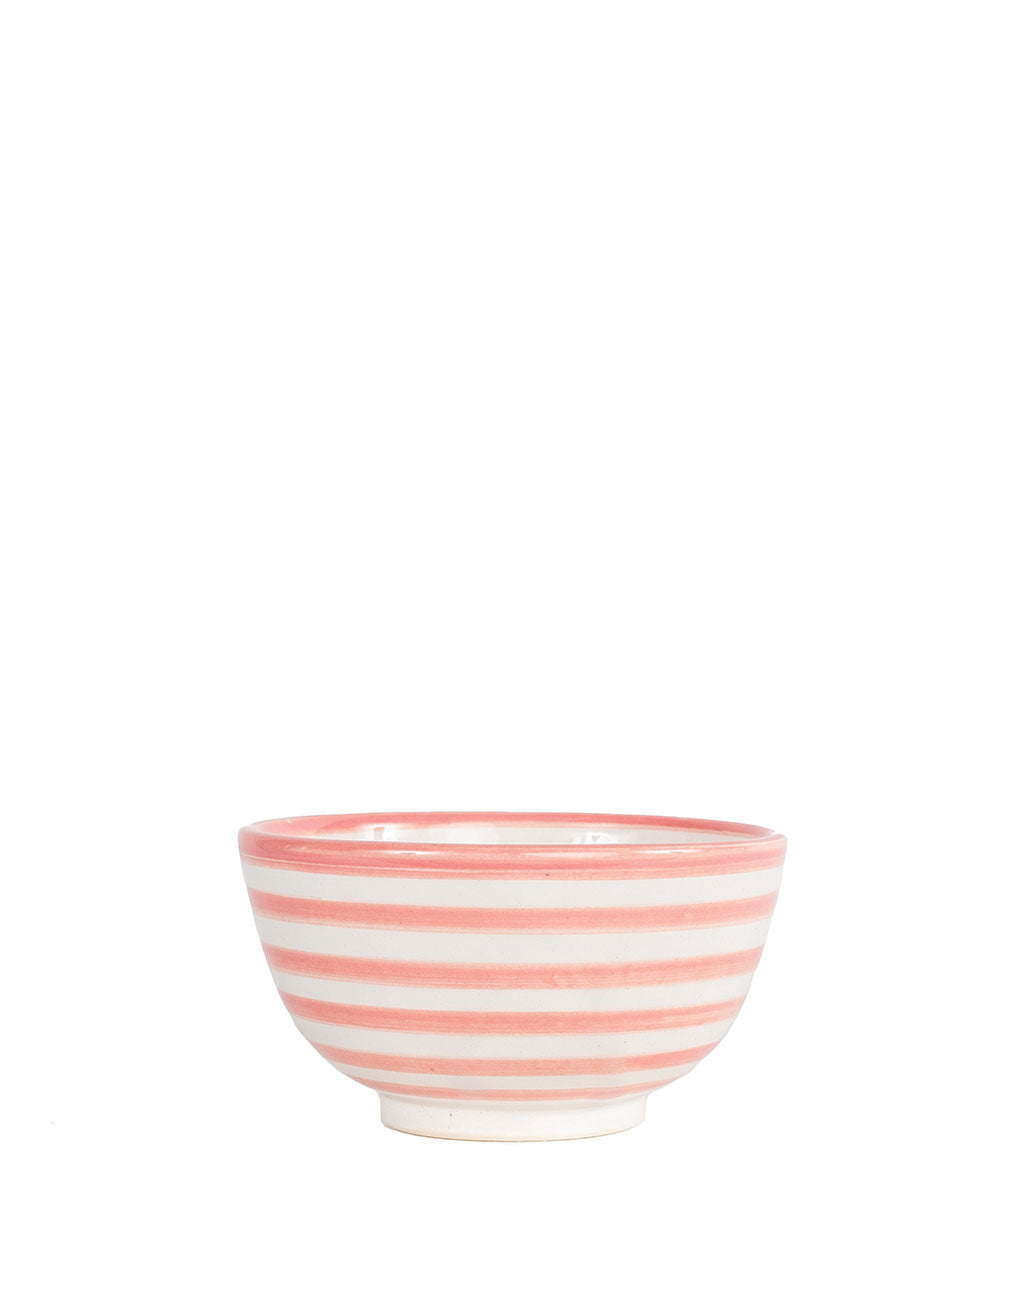 Ceramic Soup Bowl - Blush Stripe | The Little Market